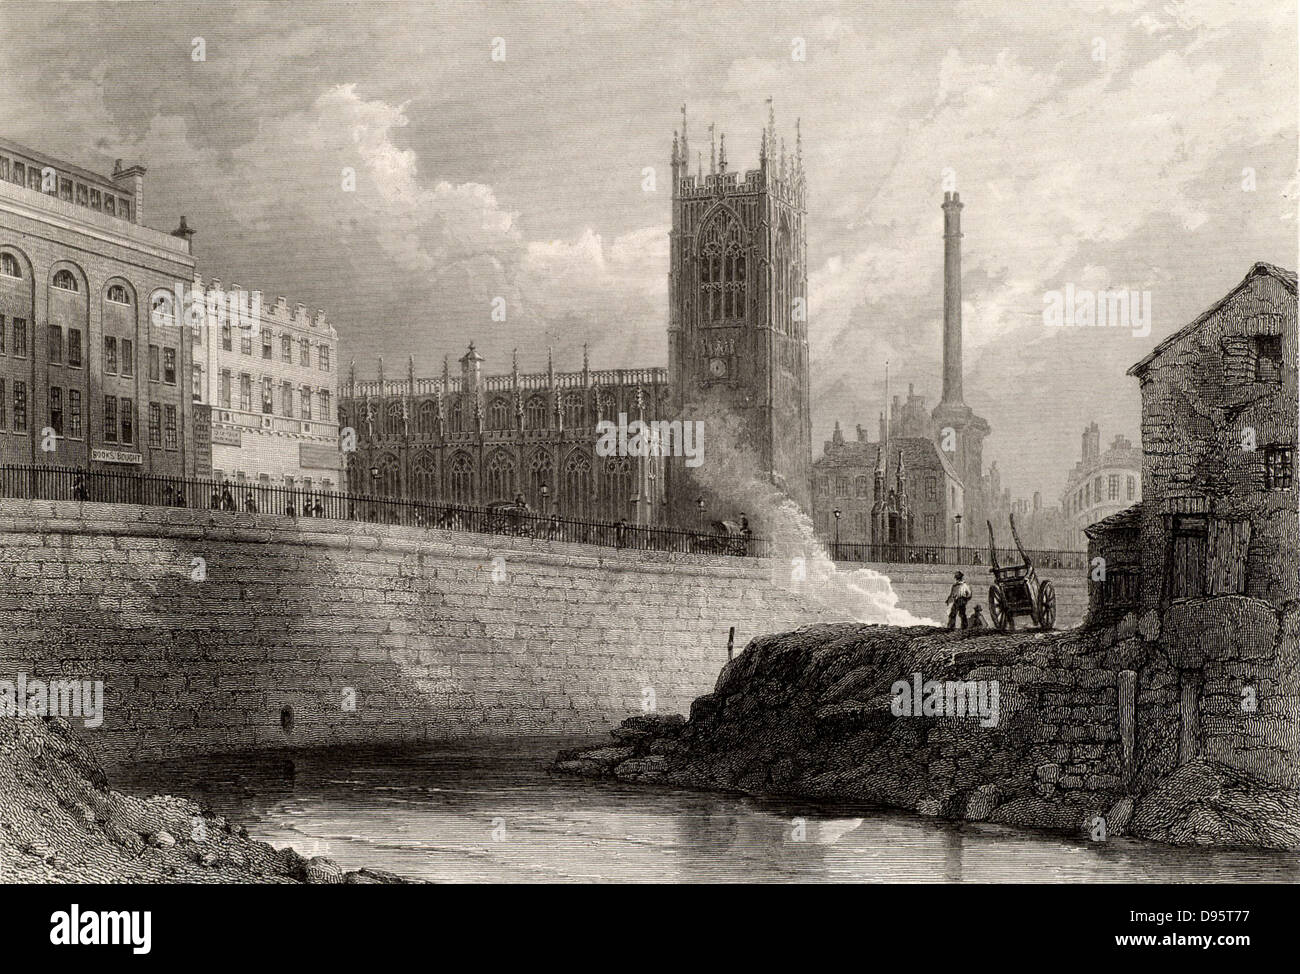 Manchester, England, from the River Irwell, showing the new buildings, including an imposing factory chimney, of - Stock Image